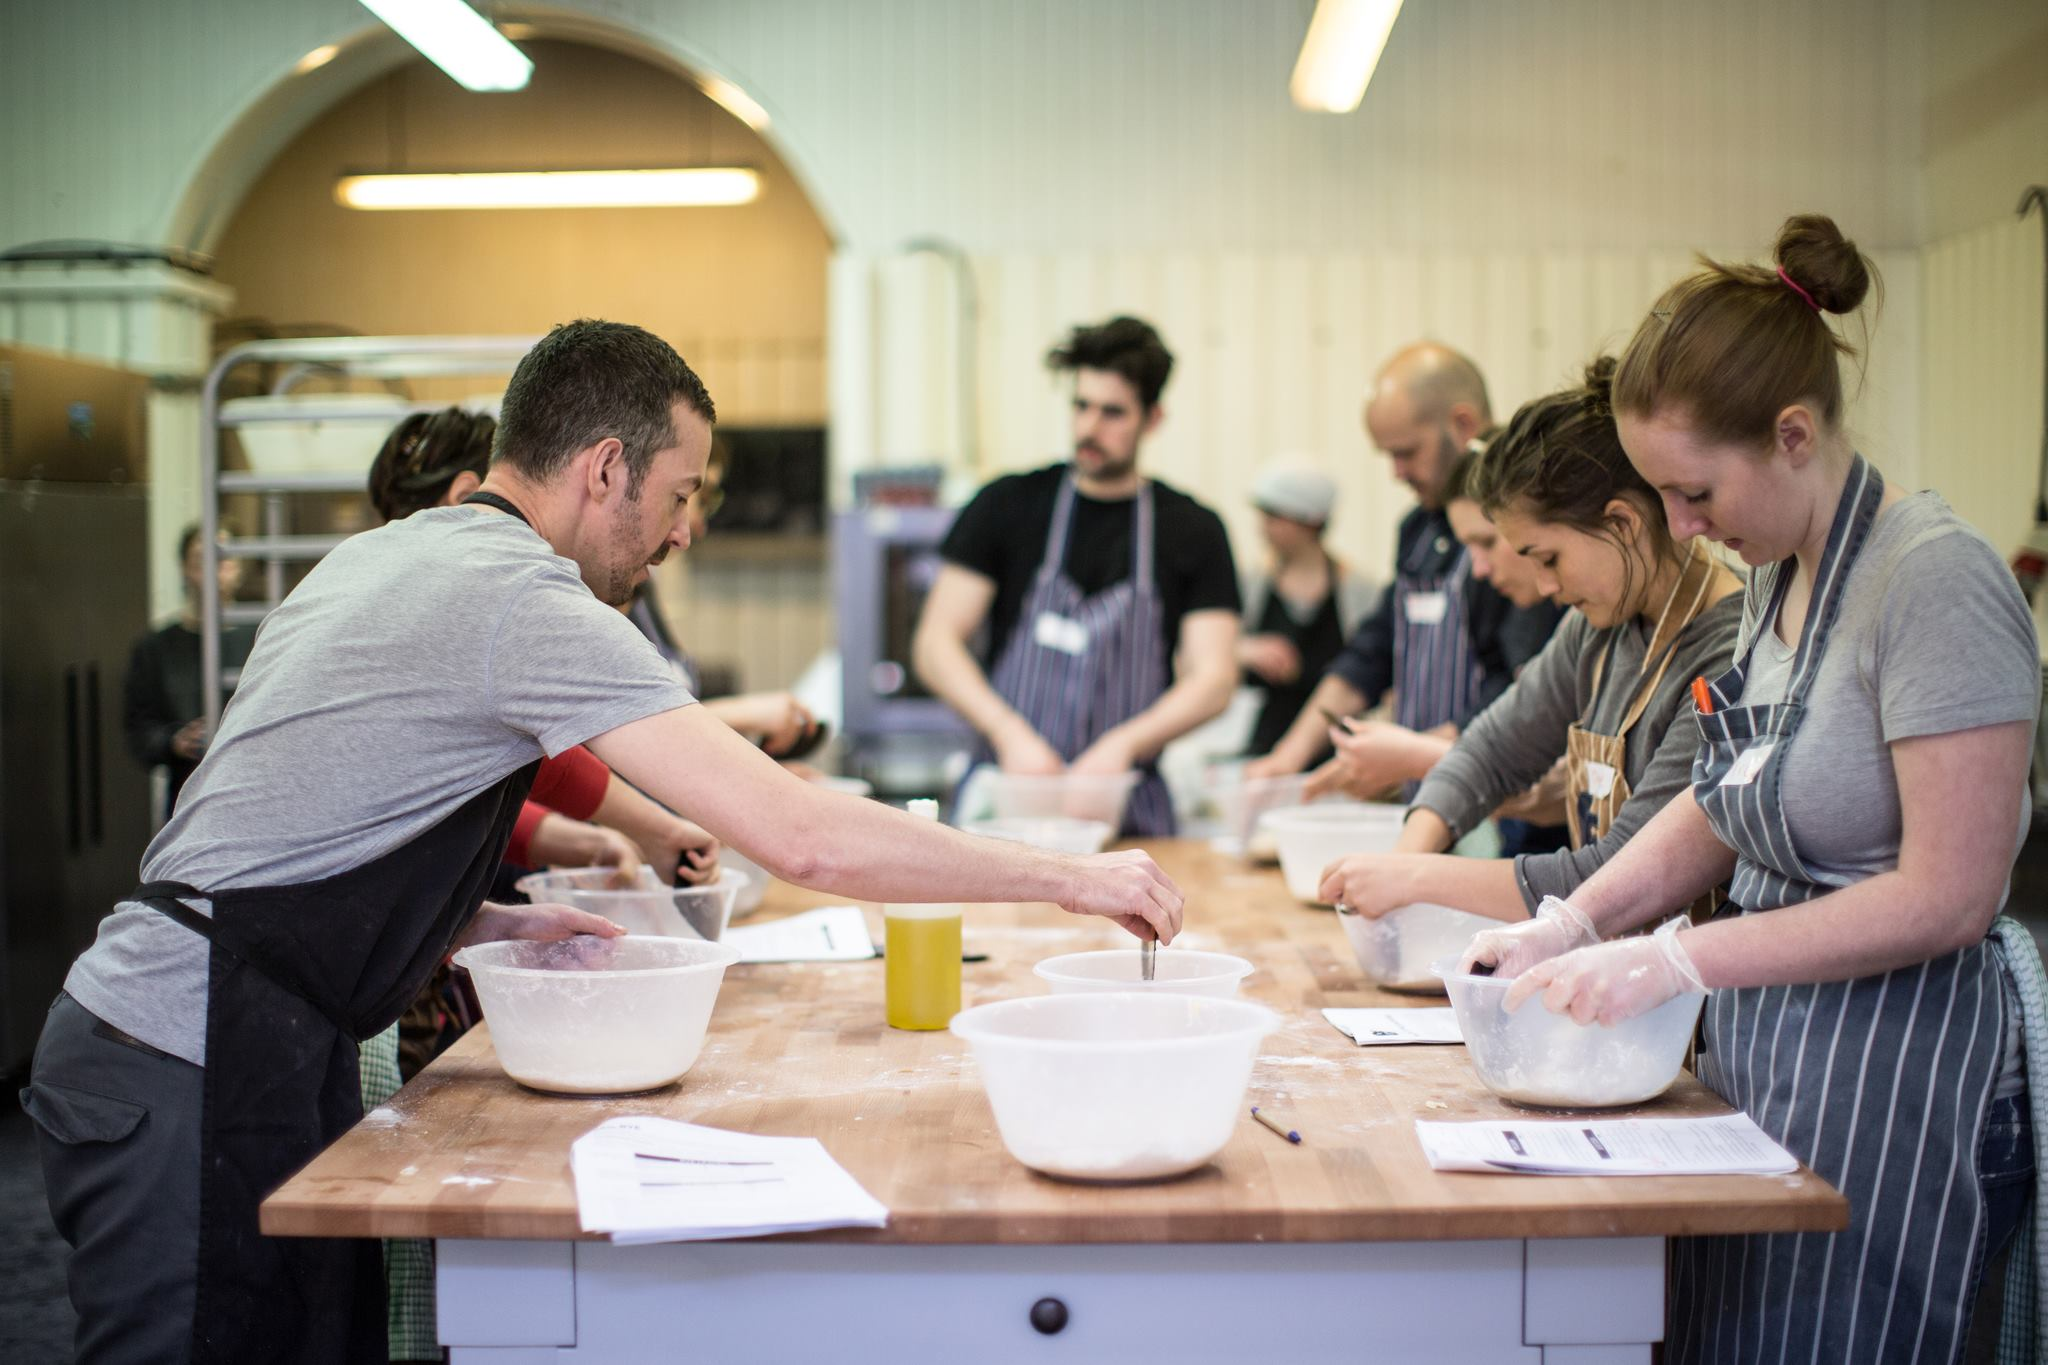 'Sourdough Pizza Class' at e5 Bakehouse